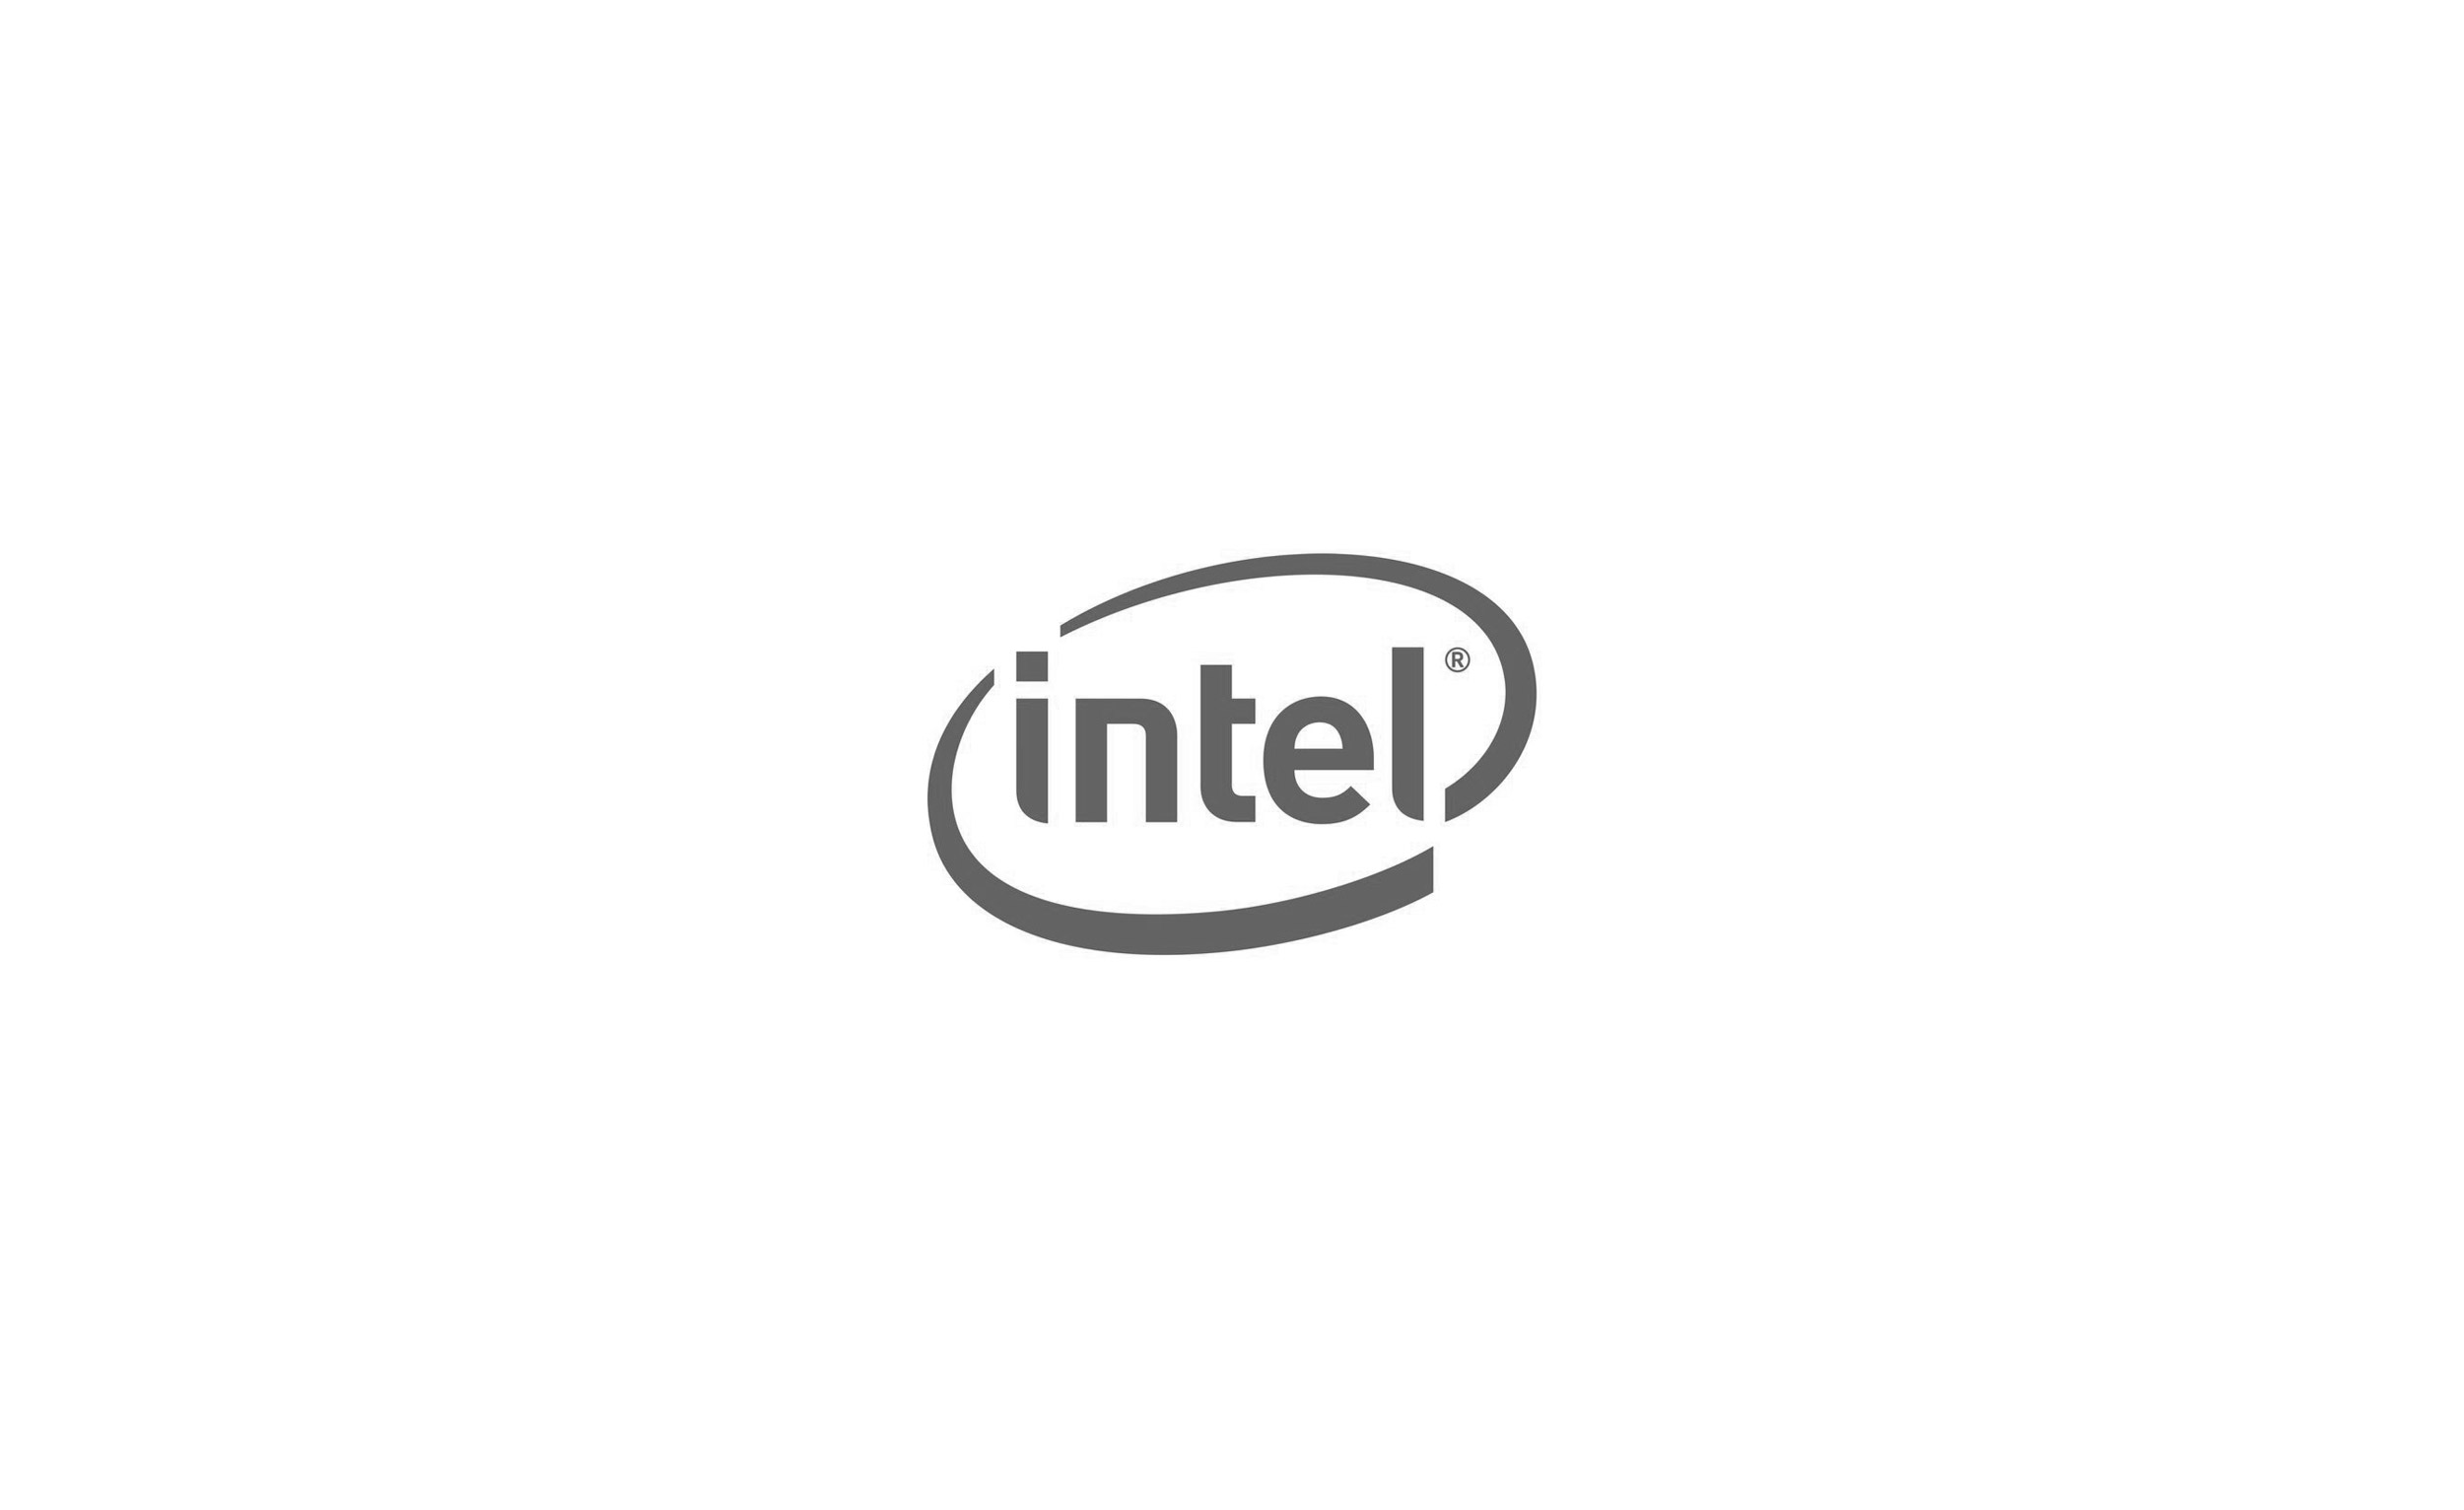 img_partner_logo_intel.jpg